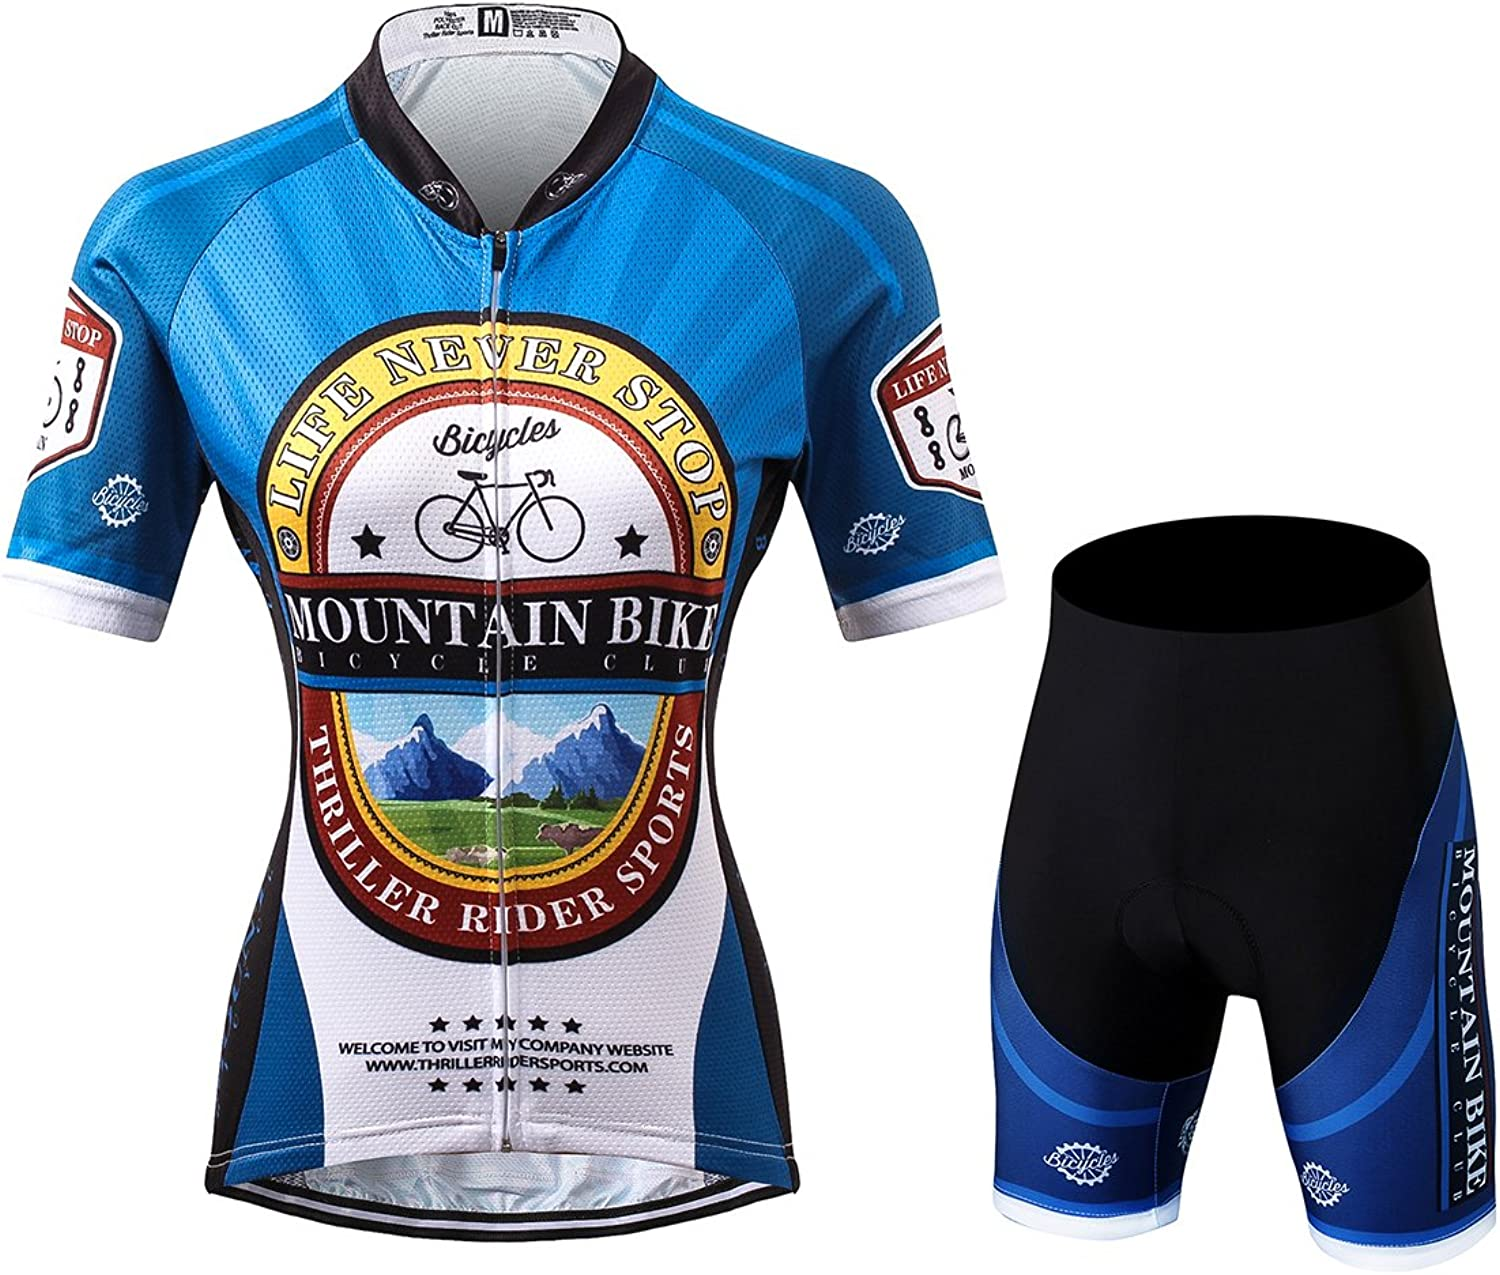 TRSW0024 LAOYOU Women's Cycling Jersey Mountain Bike Sports Short Sleeve Jersey Bicycle Cycle Shirt Wear Comfortable Breathable Shirts Tops